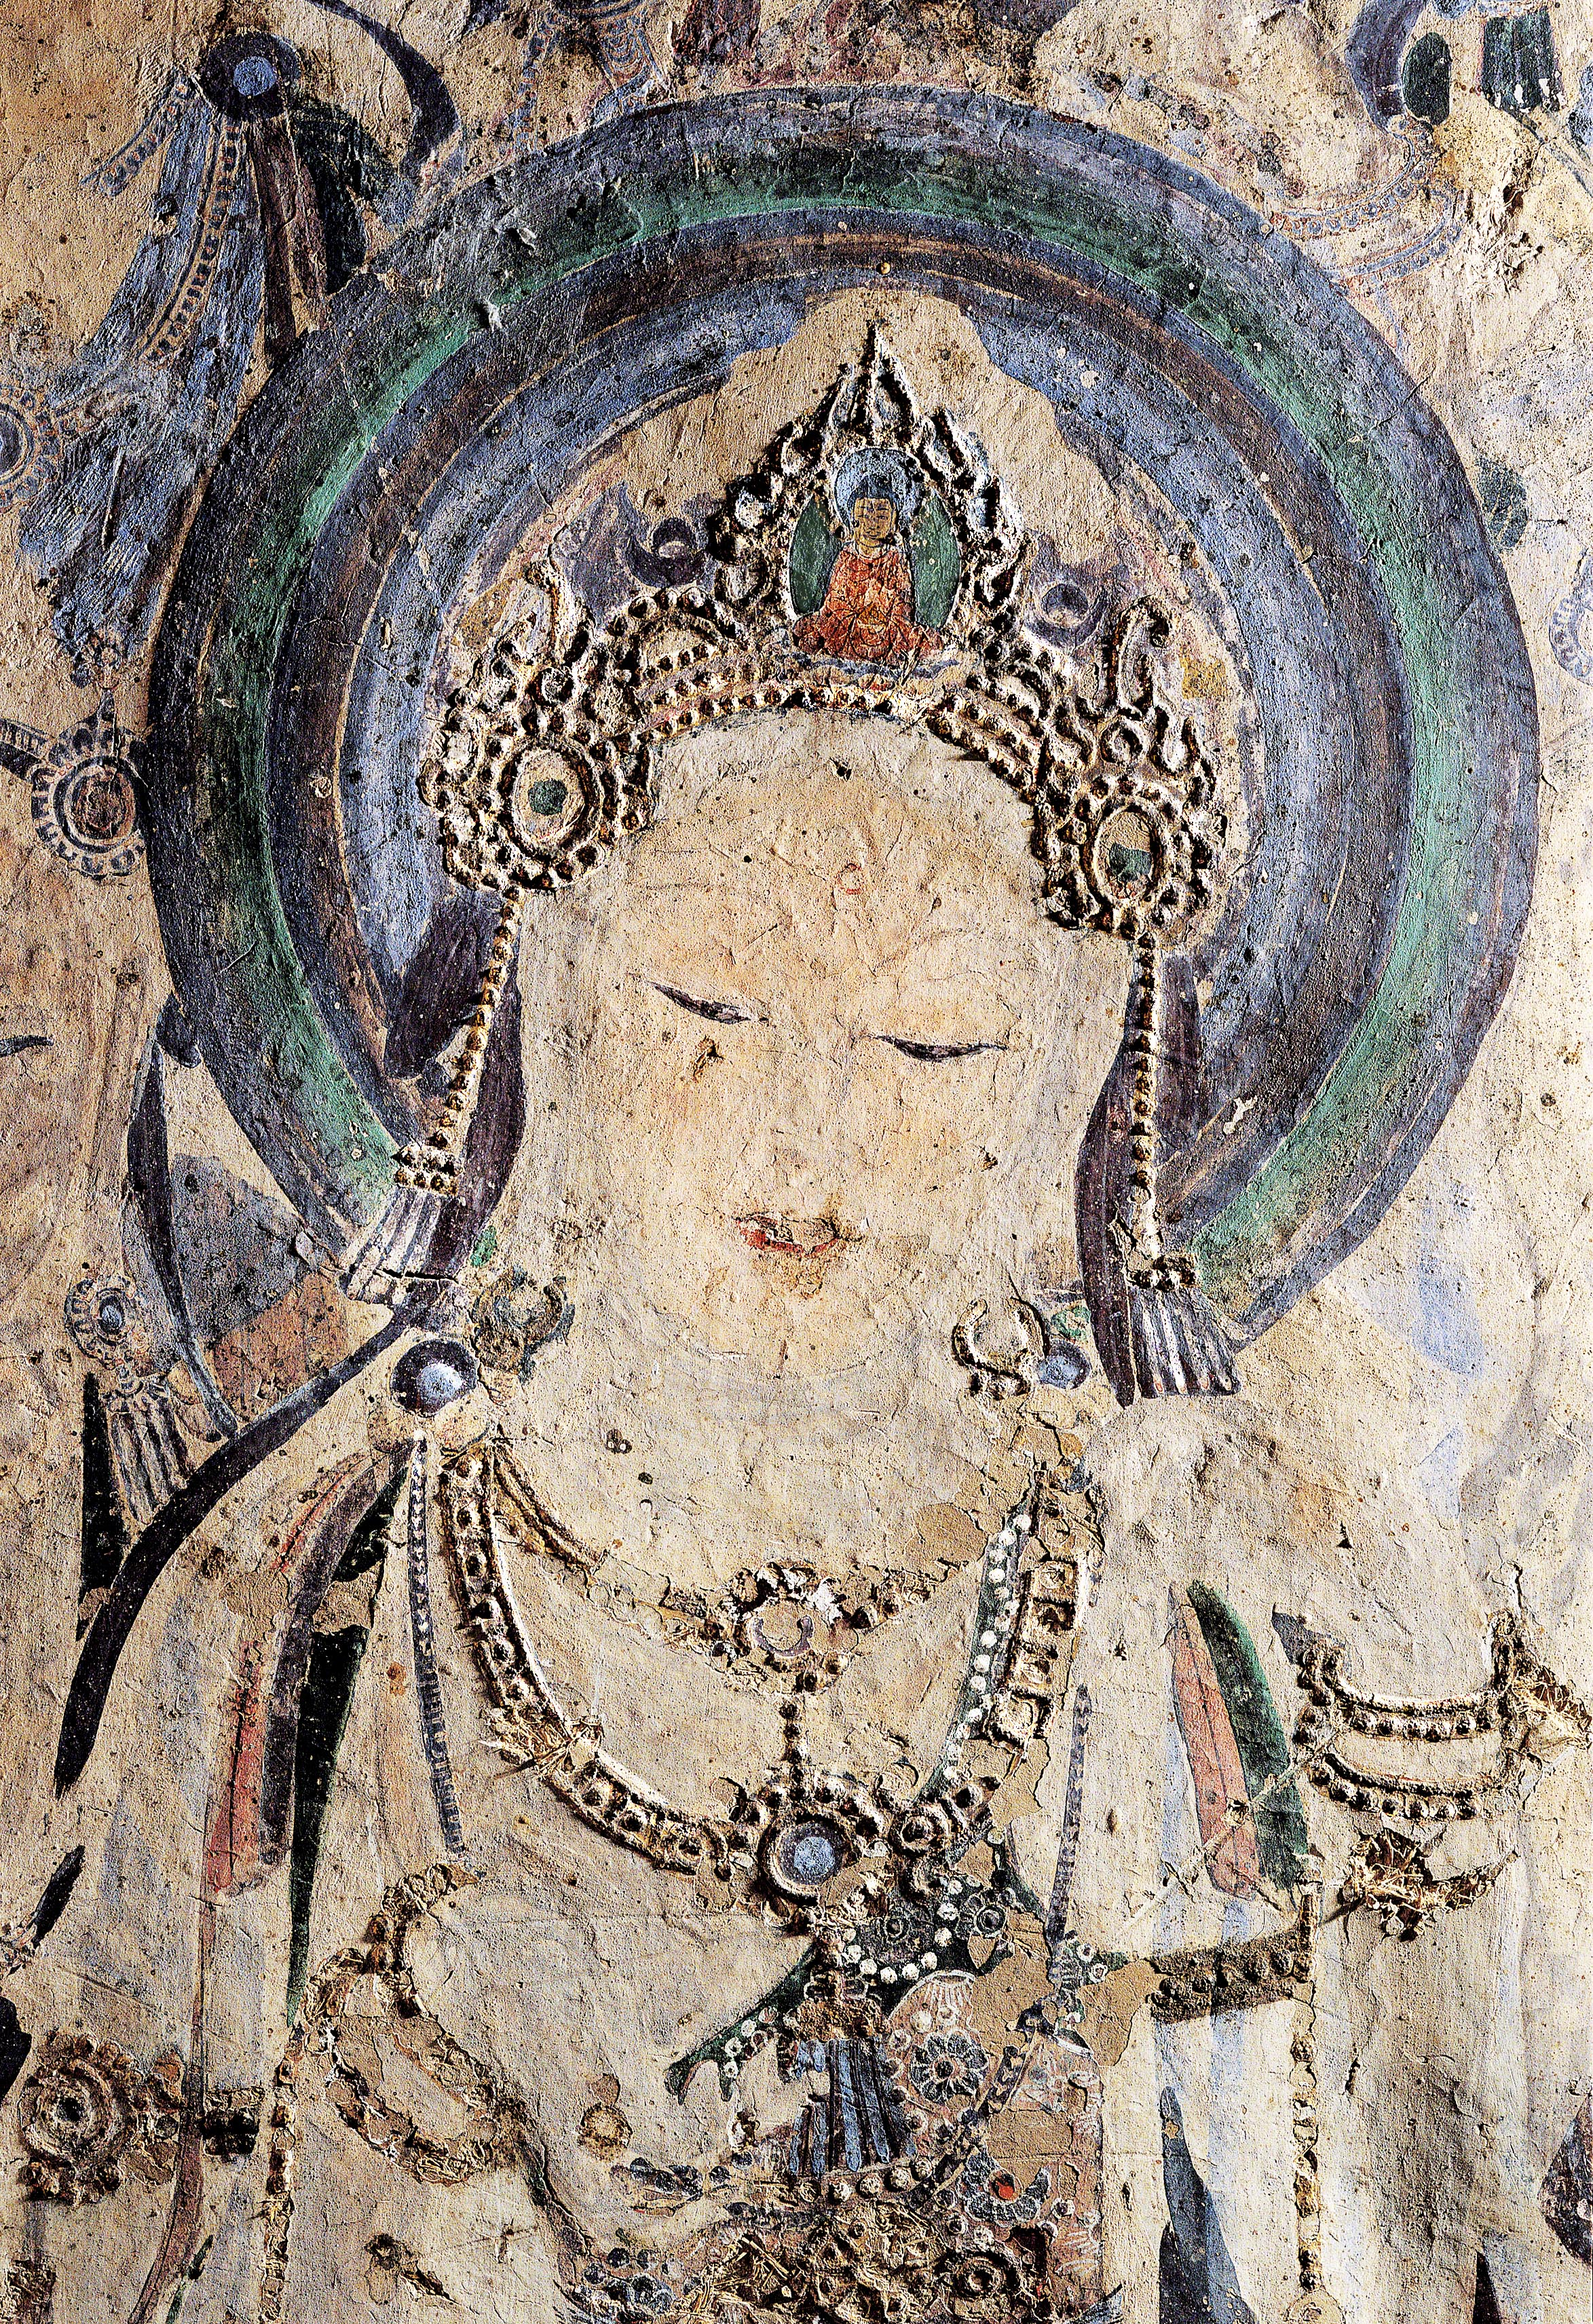 """Guanyin, also known as the Bodhisattva Avalokitesvara, or """"The Perceiver of Sounds.""""Mogao Cave 57 at Dunhuang, China. Photo courtesy of the Dunhuang Academy."""